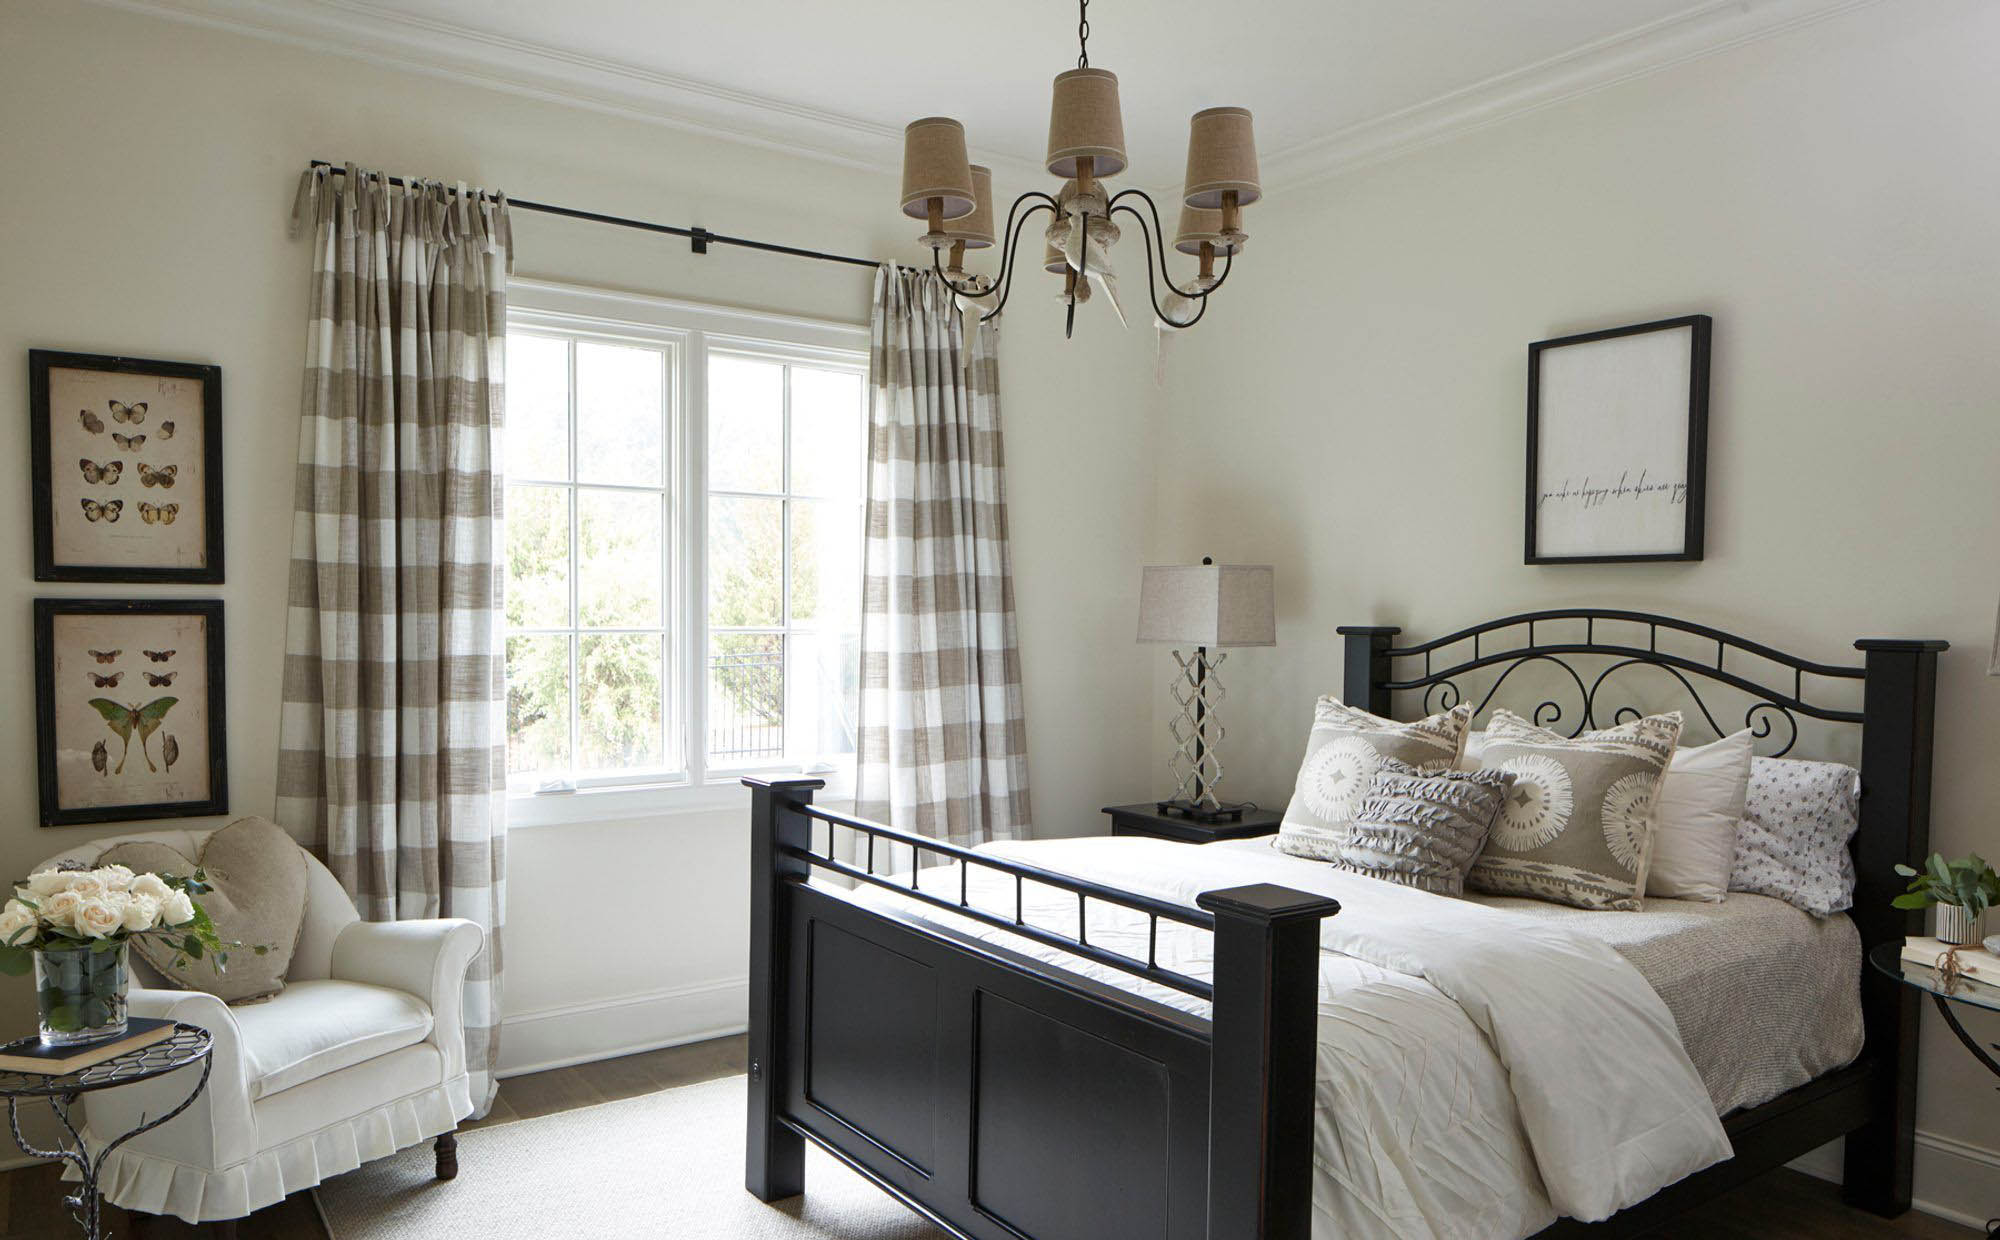 small master bedroom design black bed r=frame with cream and white bedding cream walls checkered drapers